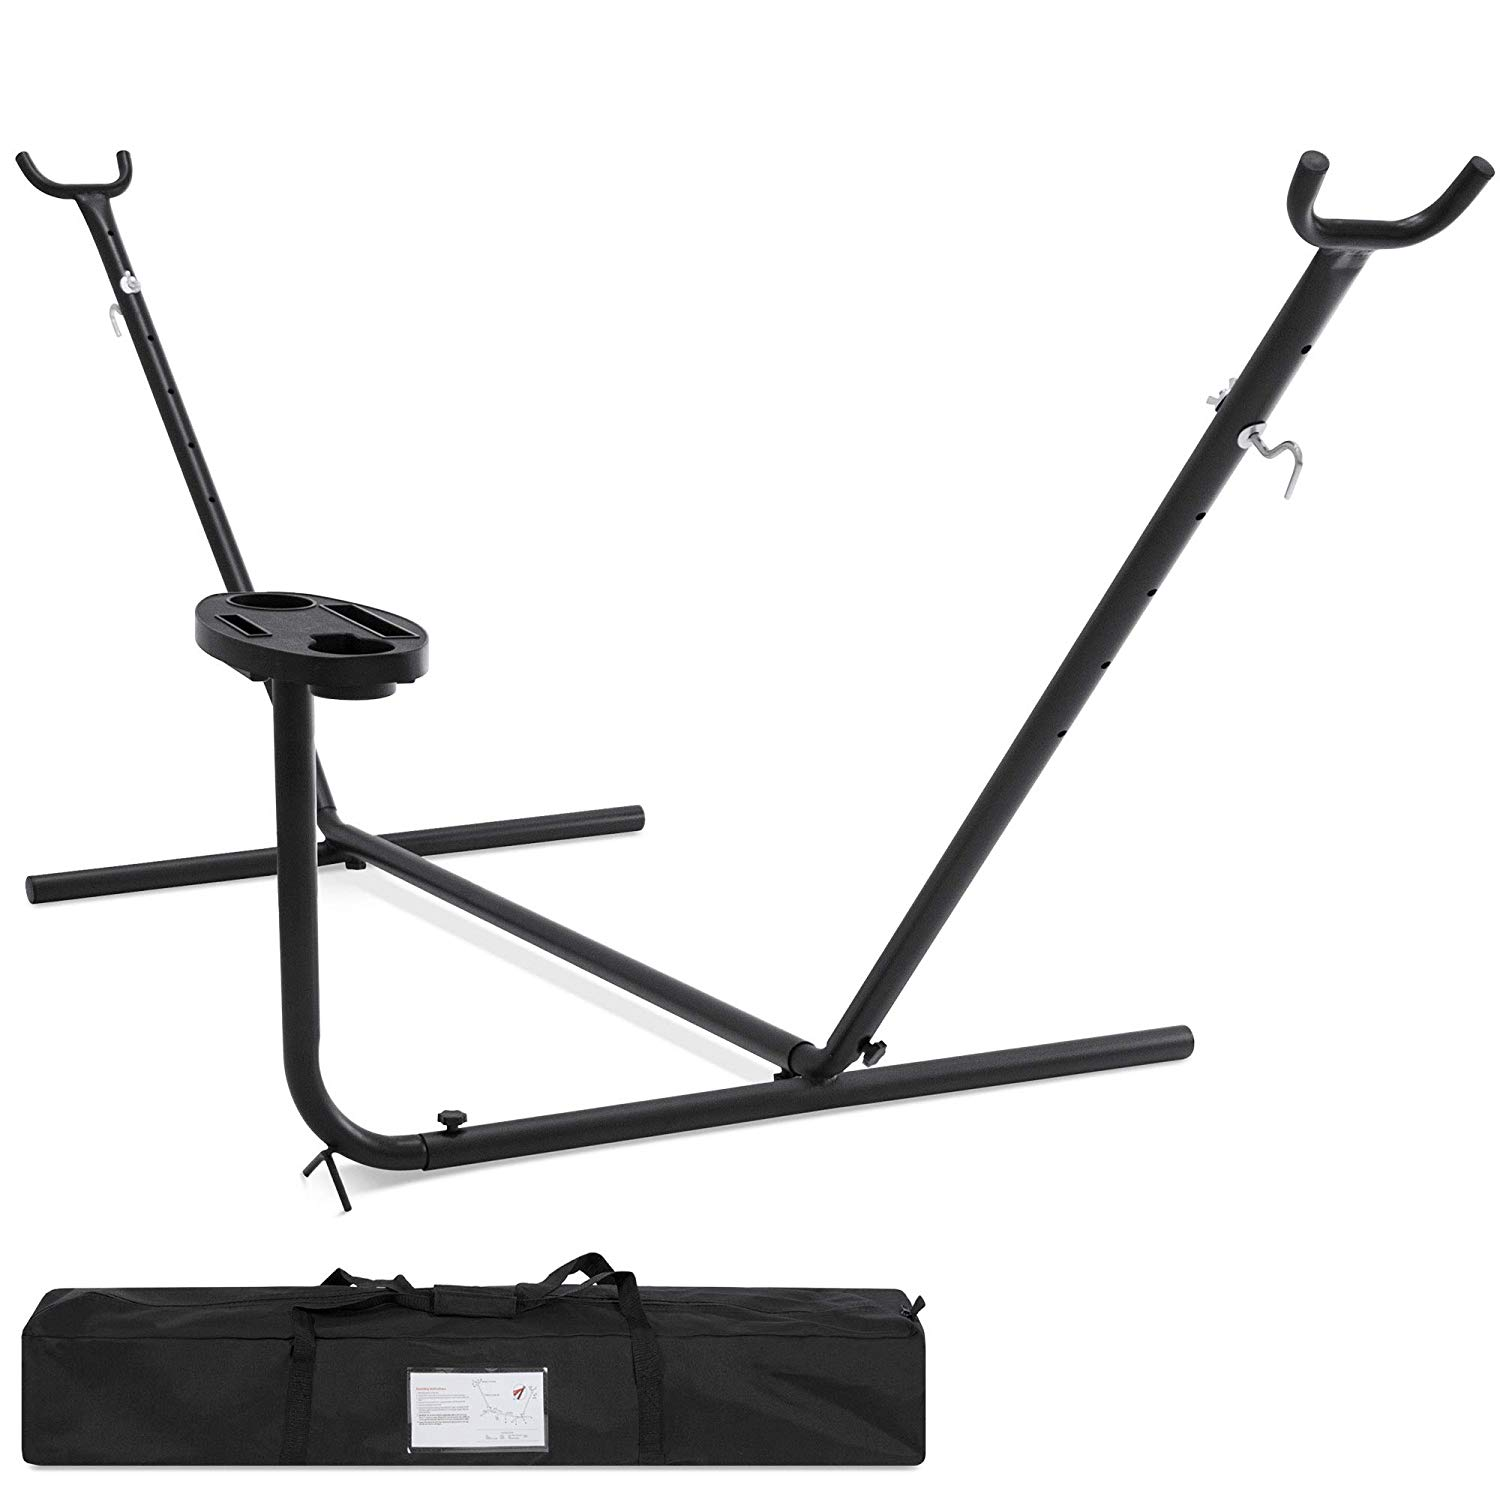 Best Choice Products 10-foot Portable Steel Hammock Stand